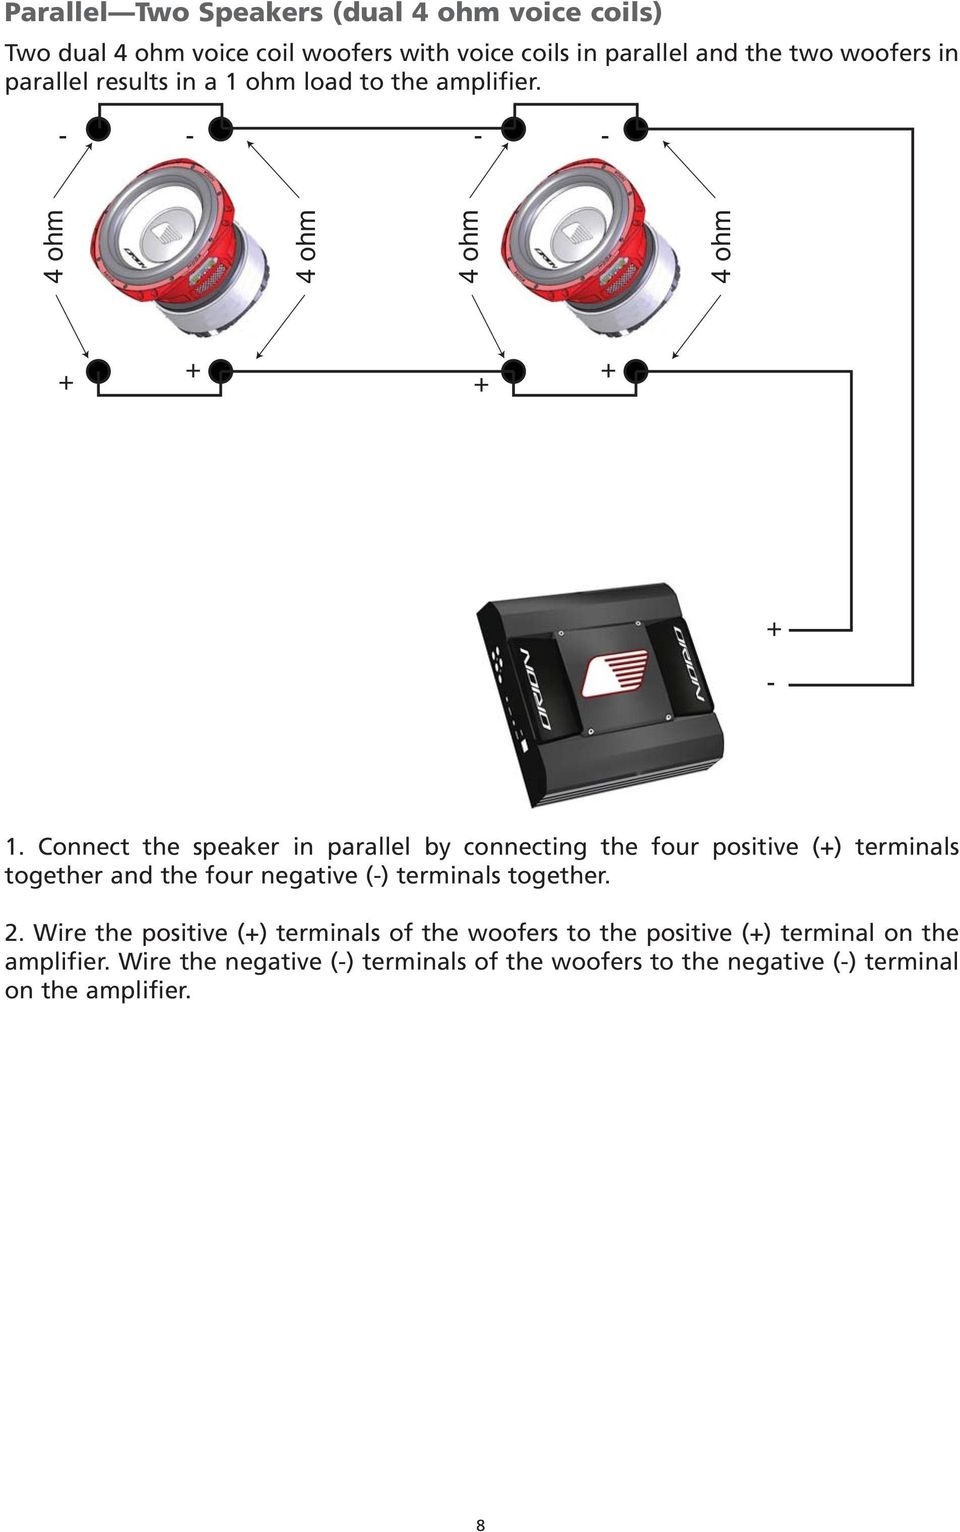 Subwoofer Hcca Pdf How To Wire Speakers Together Connect The Speaker In Parallel By Connecting Four Positive Terminals And